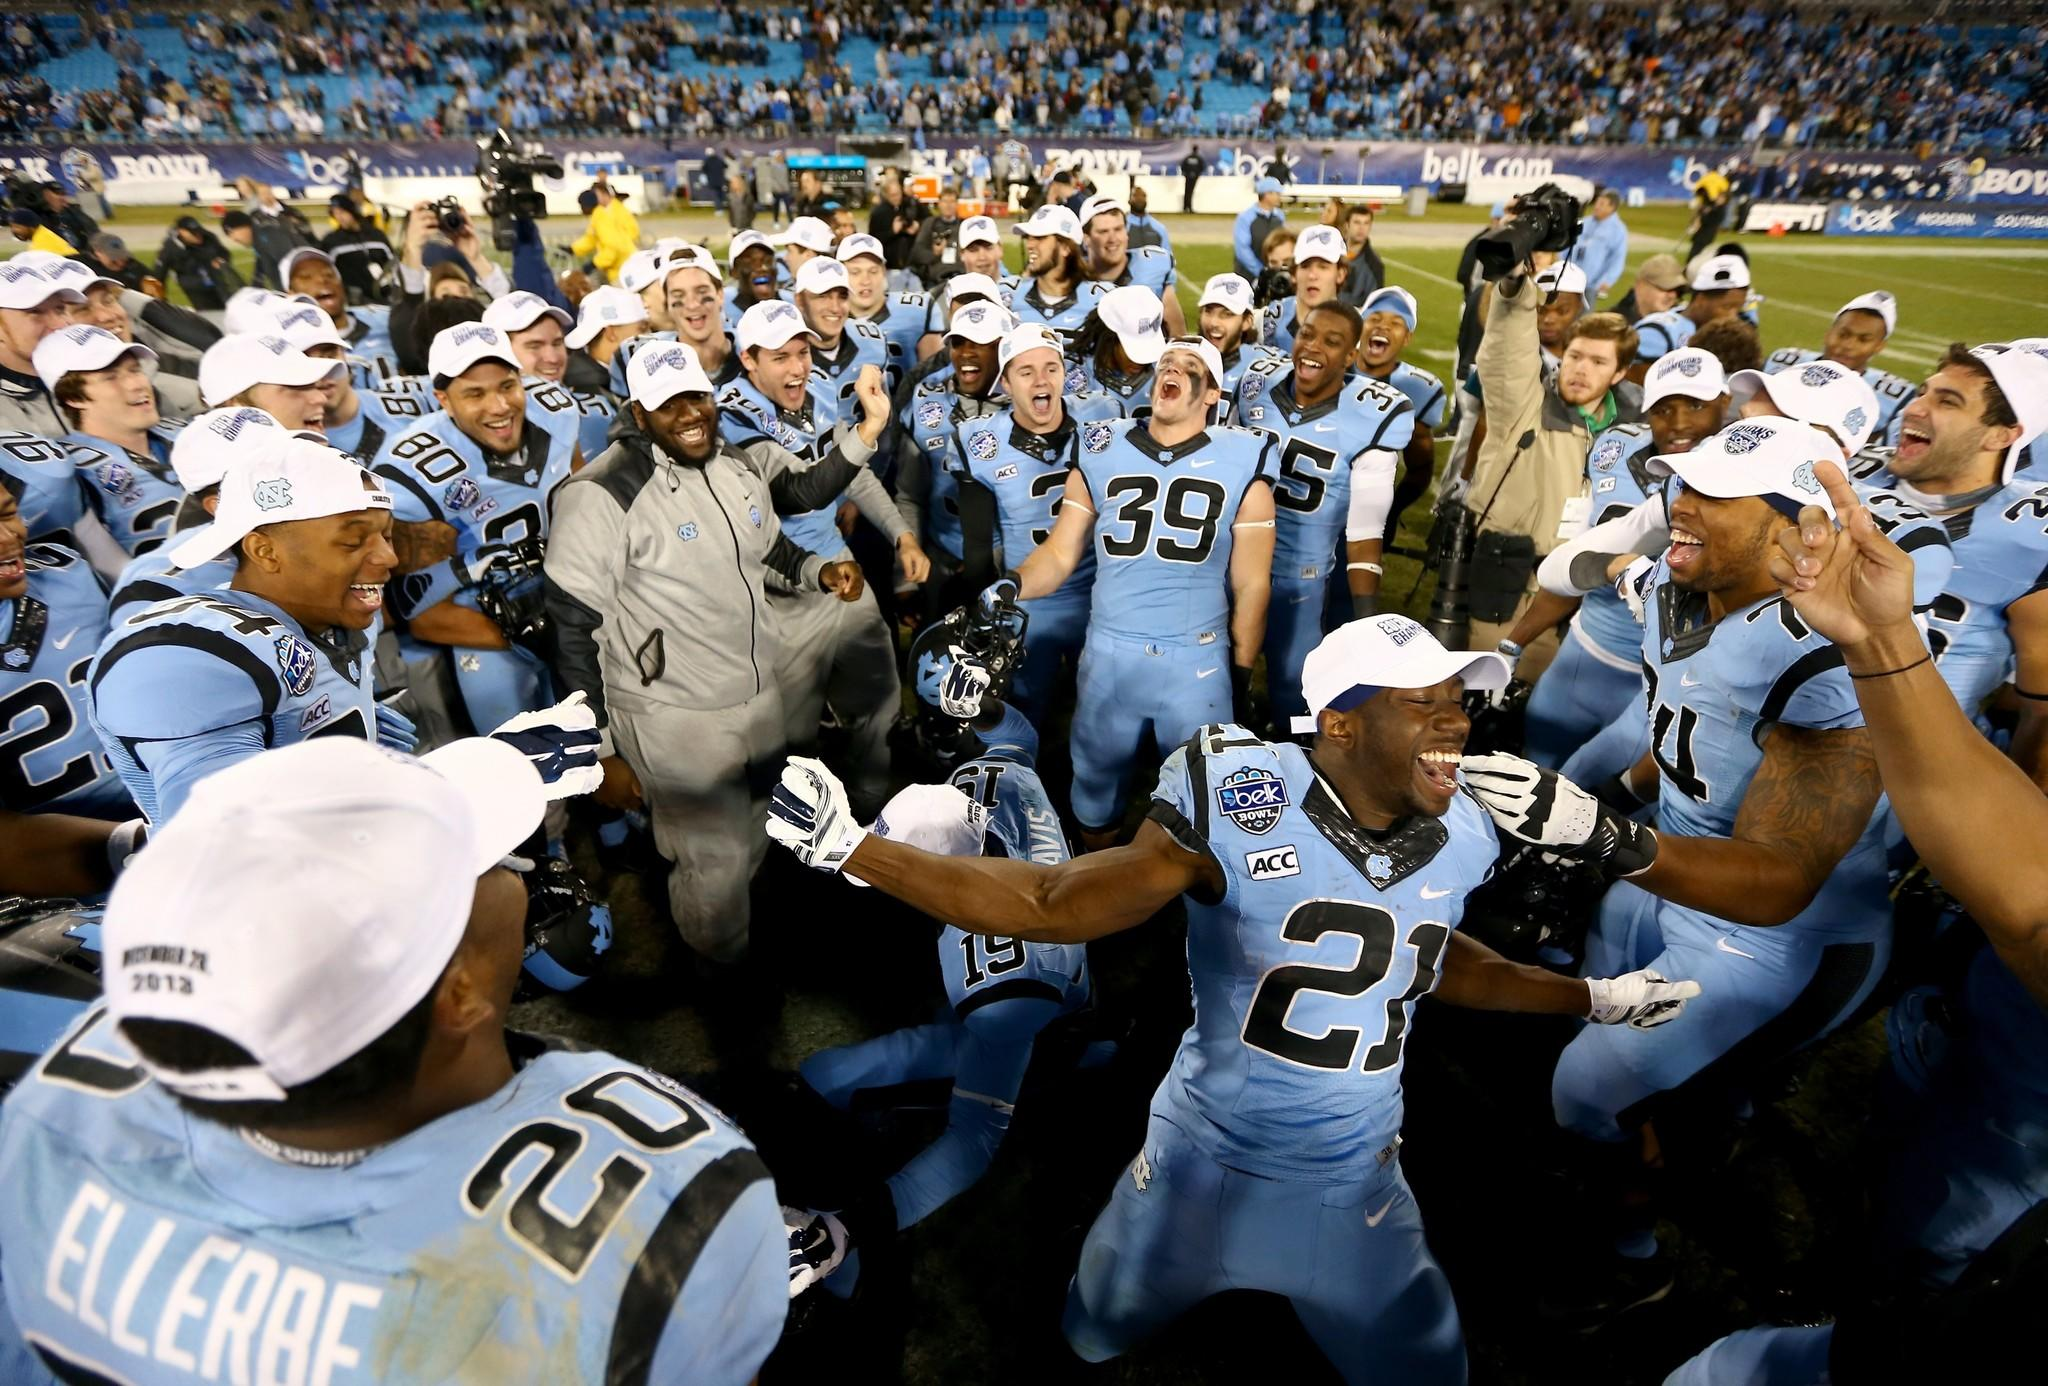 Romar Morris celebrates with teammates after defeating Cincinnati 39-17 at Bank of America Stadium.